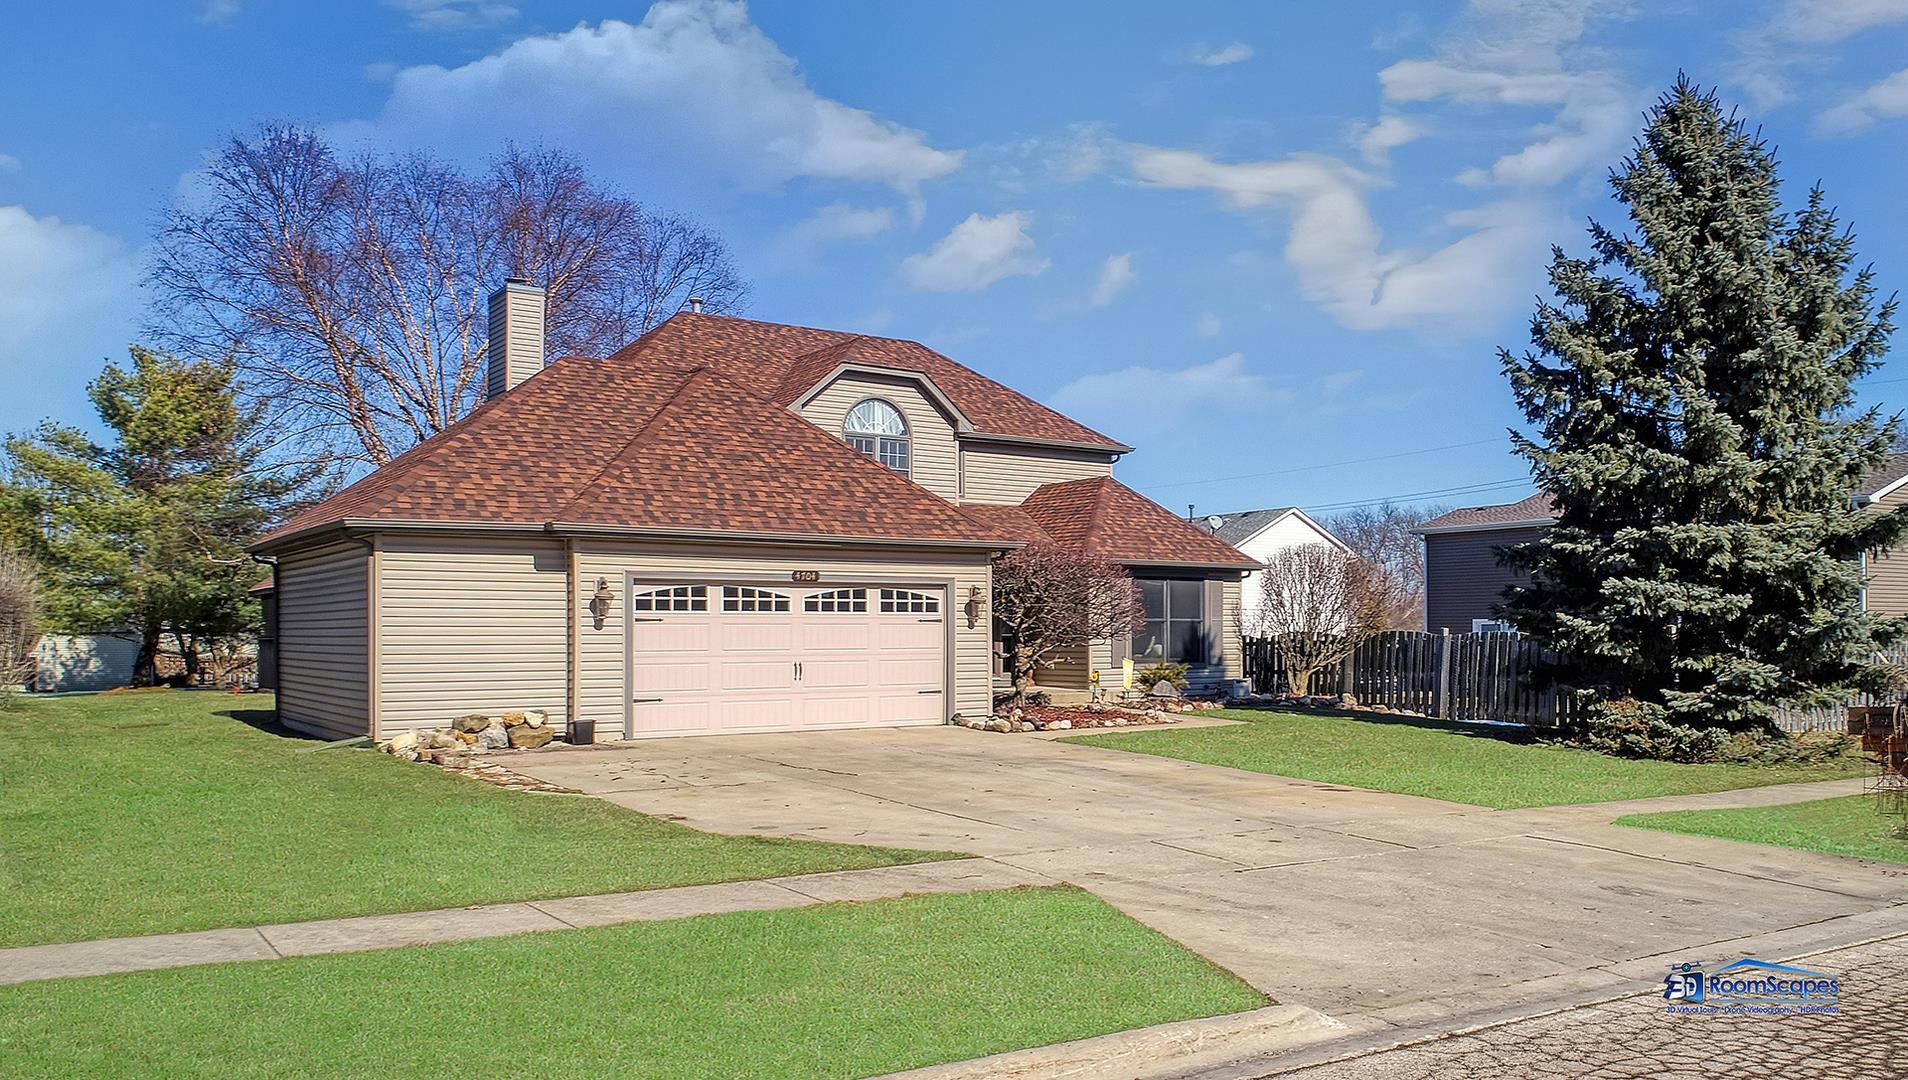 4704 Crystal Trail, McHenry, IL 60050 - #: 10647390